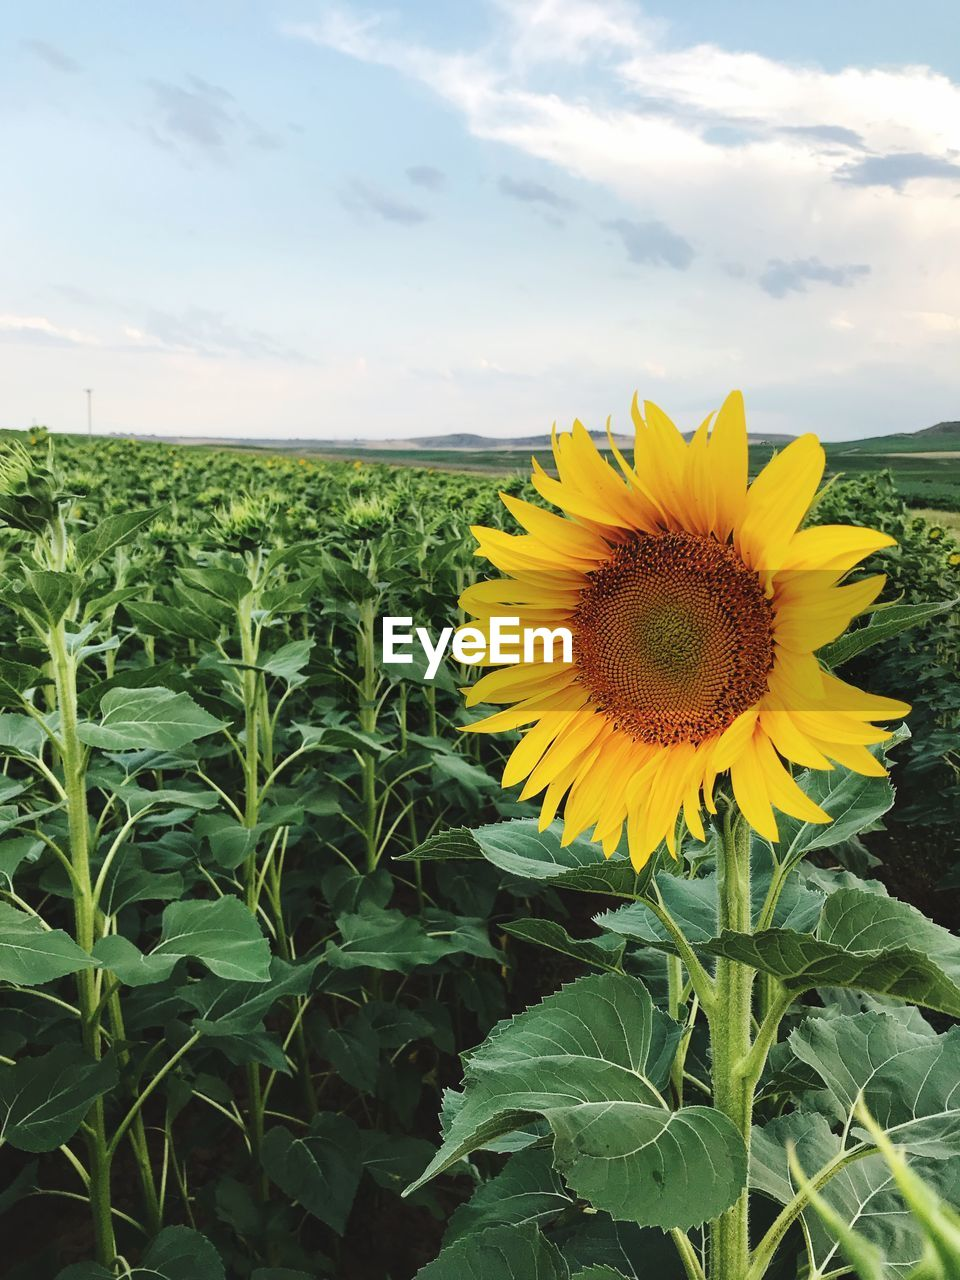 plant, growth, flower, beauty in nature, flowering plant, freshness, yellow, fragility, flower head, vulnerability, sky, sunflower, nature, leaf, plant part, field, inflorescence, petal, land, cloud - sky, pollen, no people, outdoors